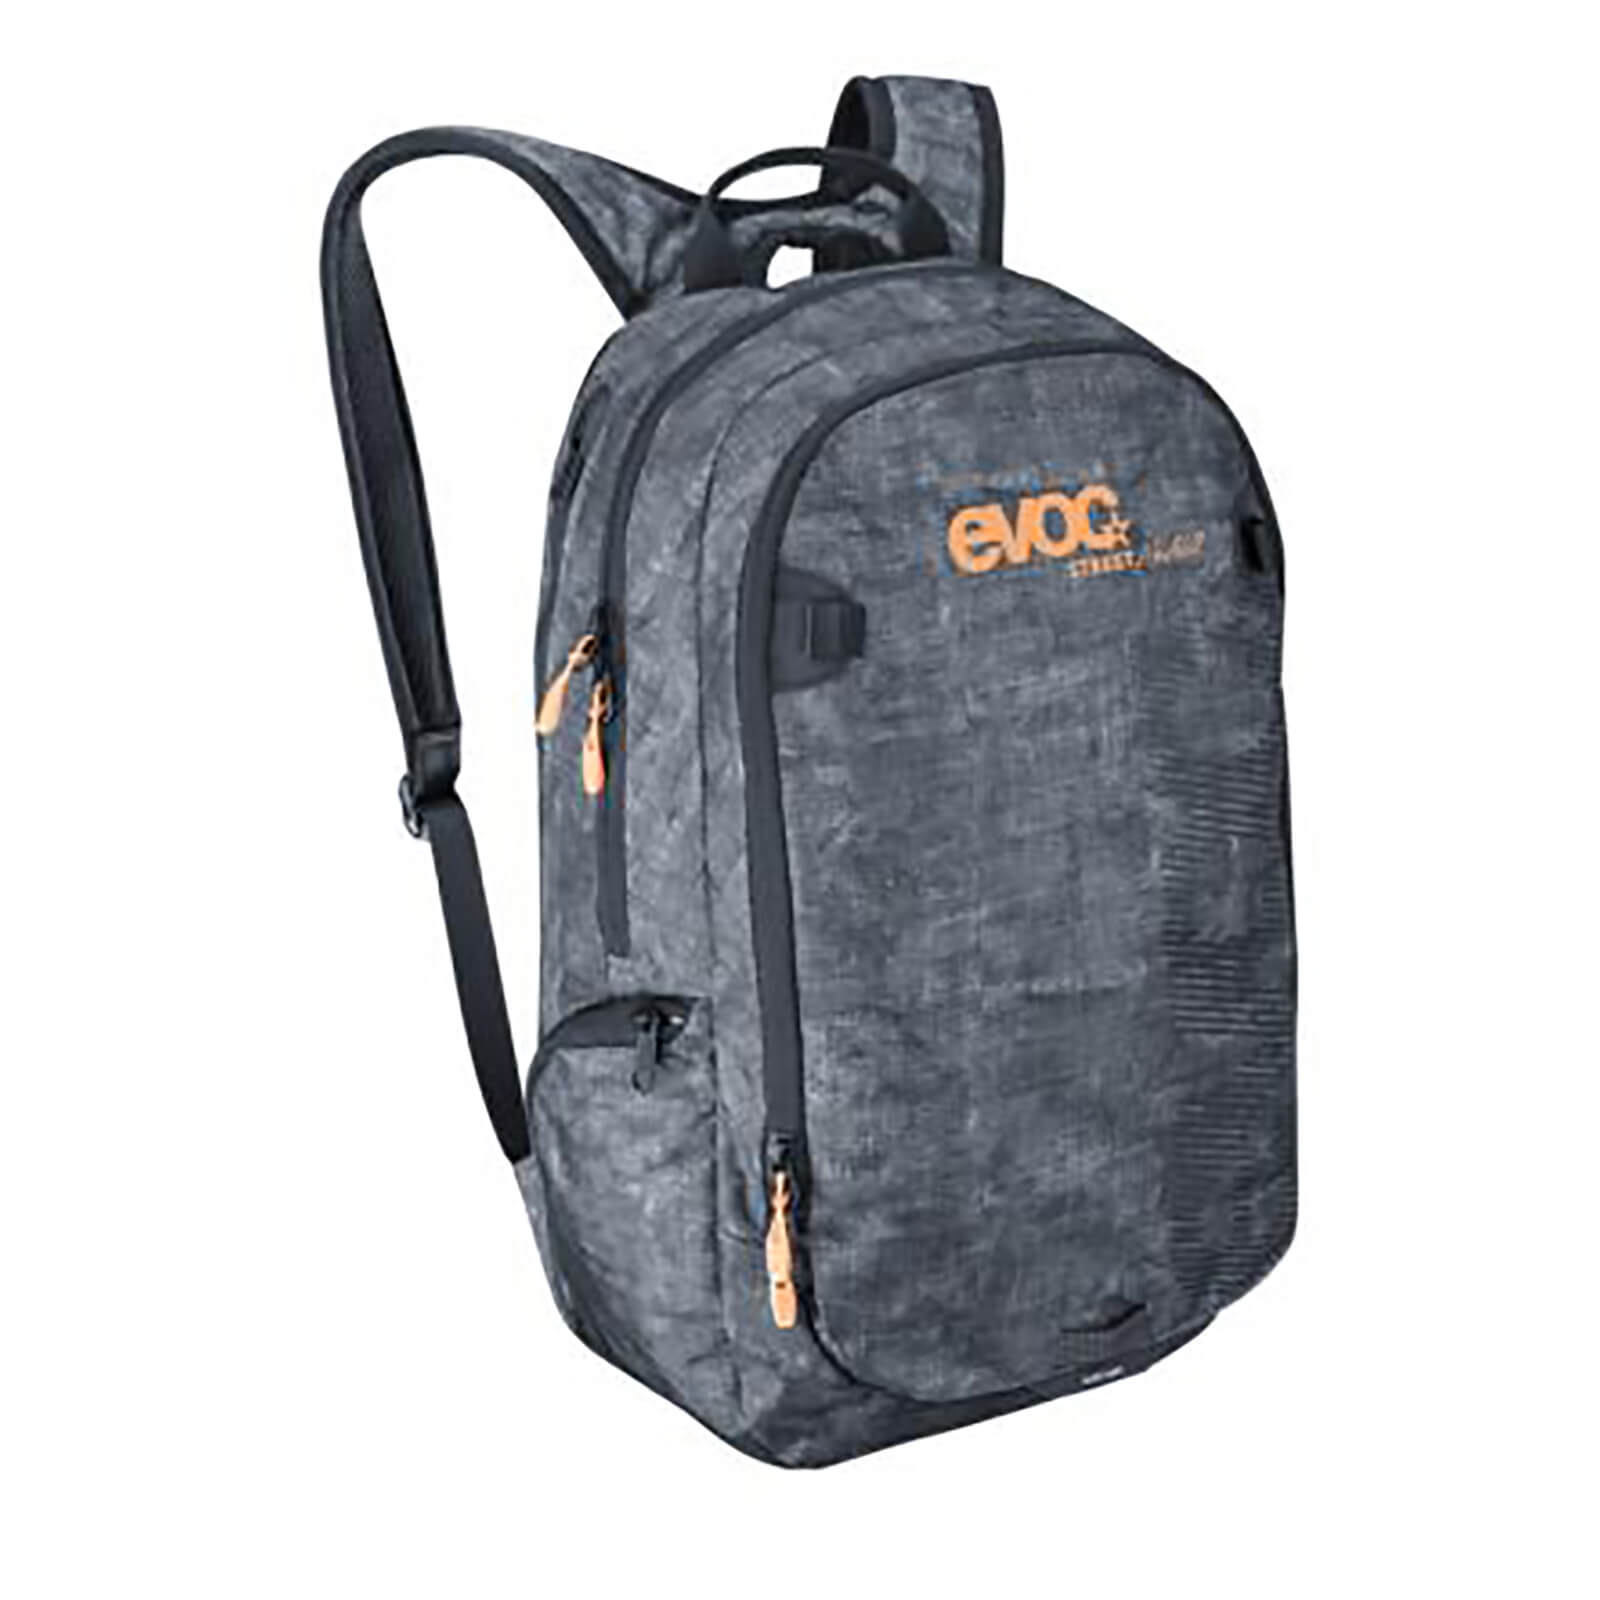 Evoc Street Macaskill 25L - Heather